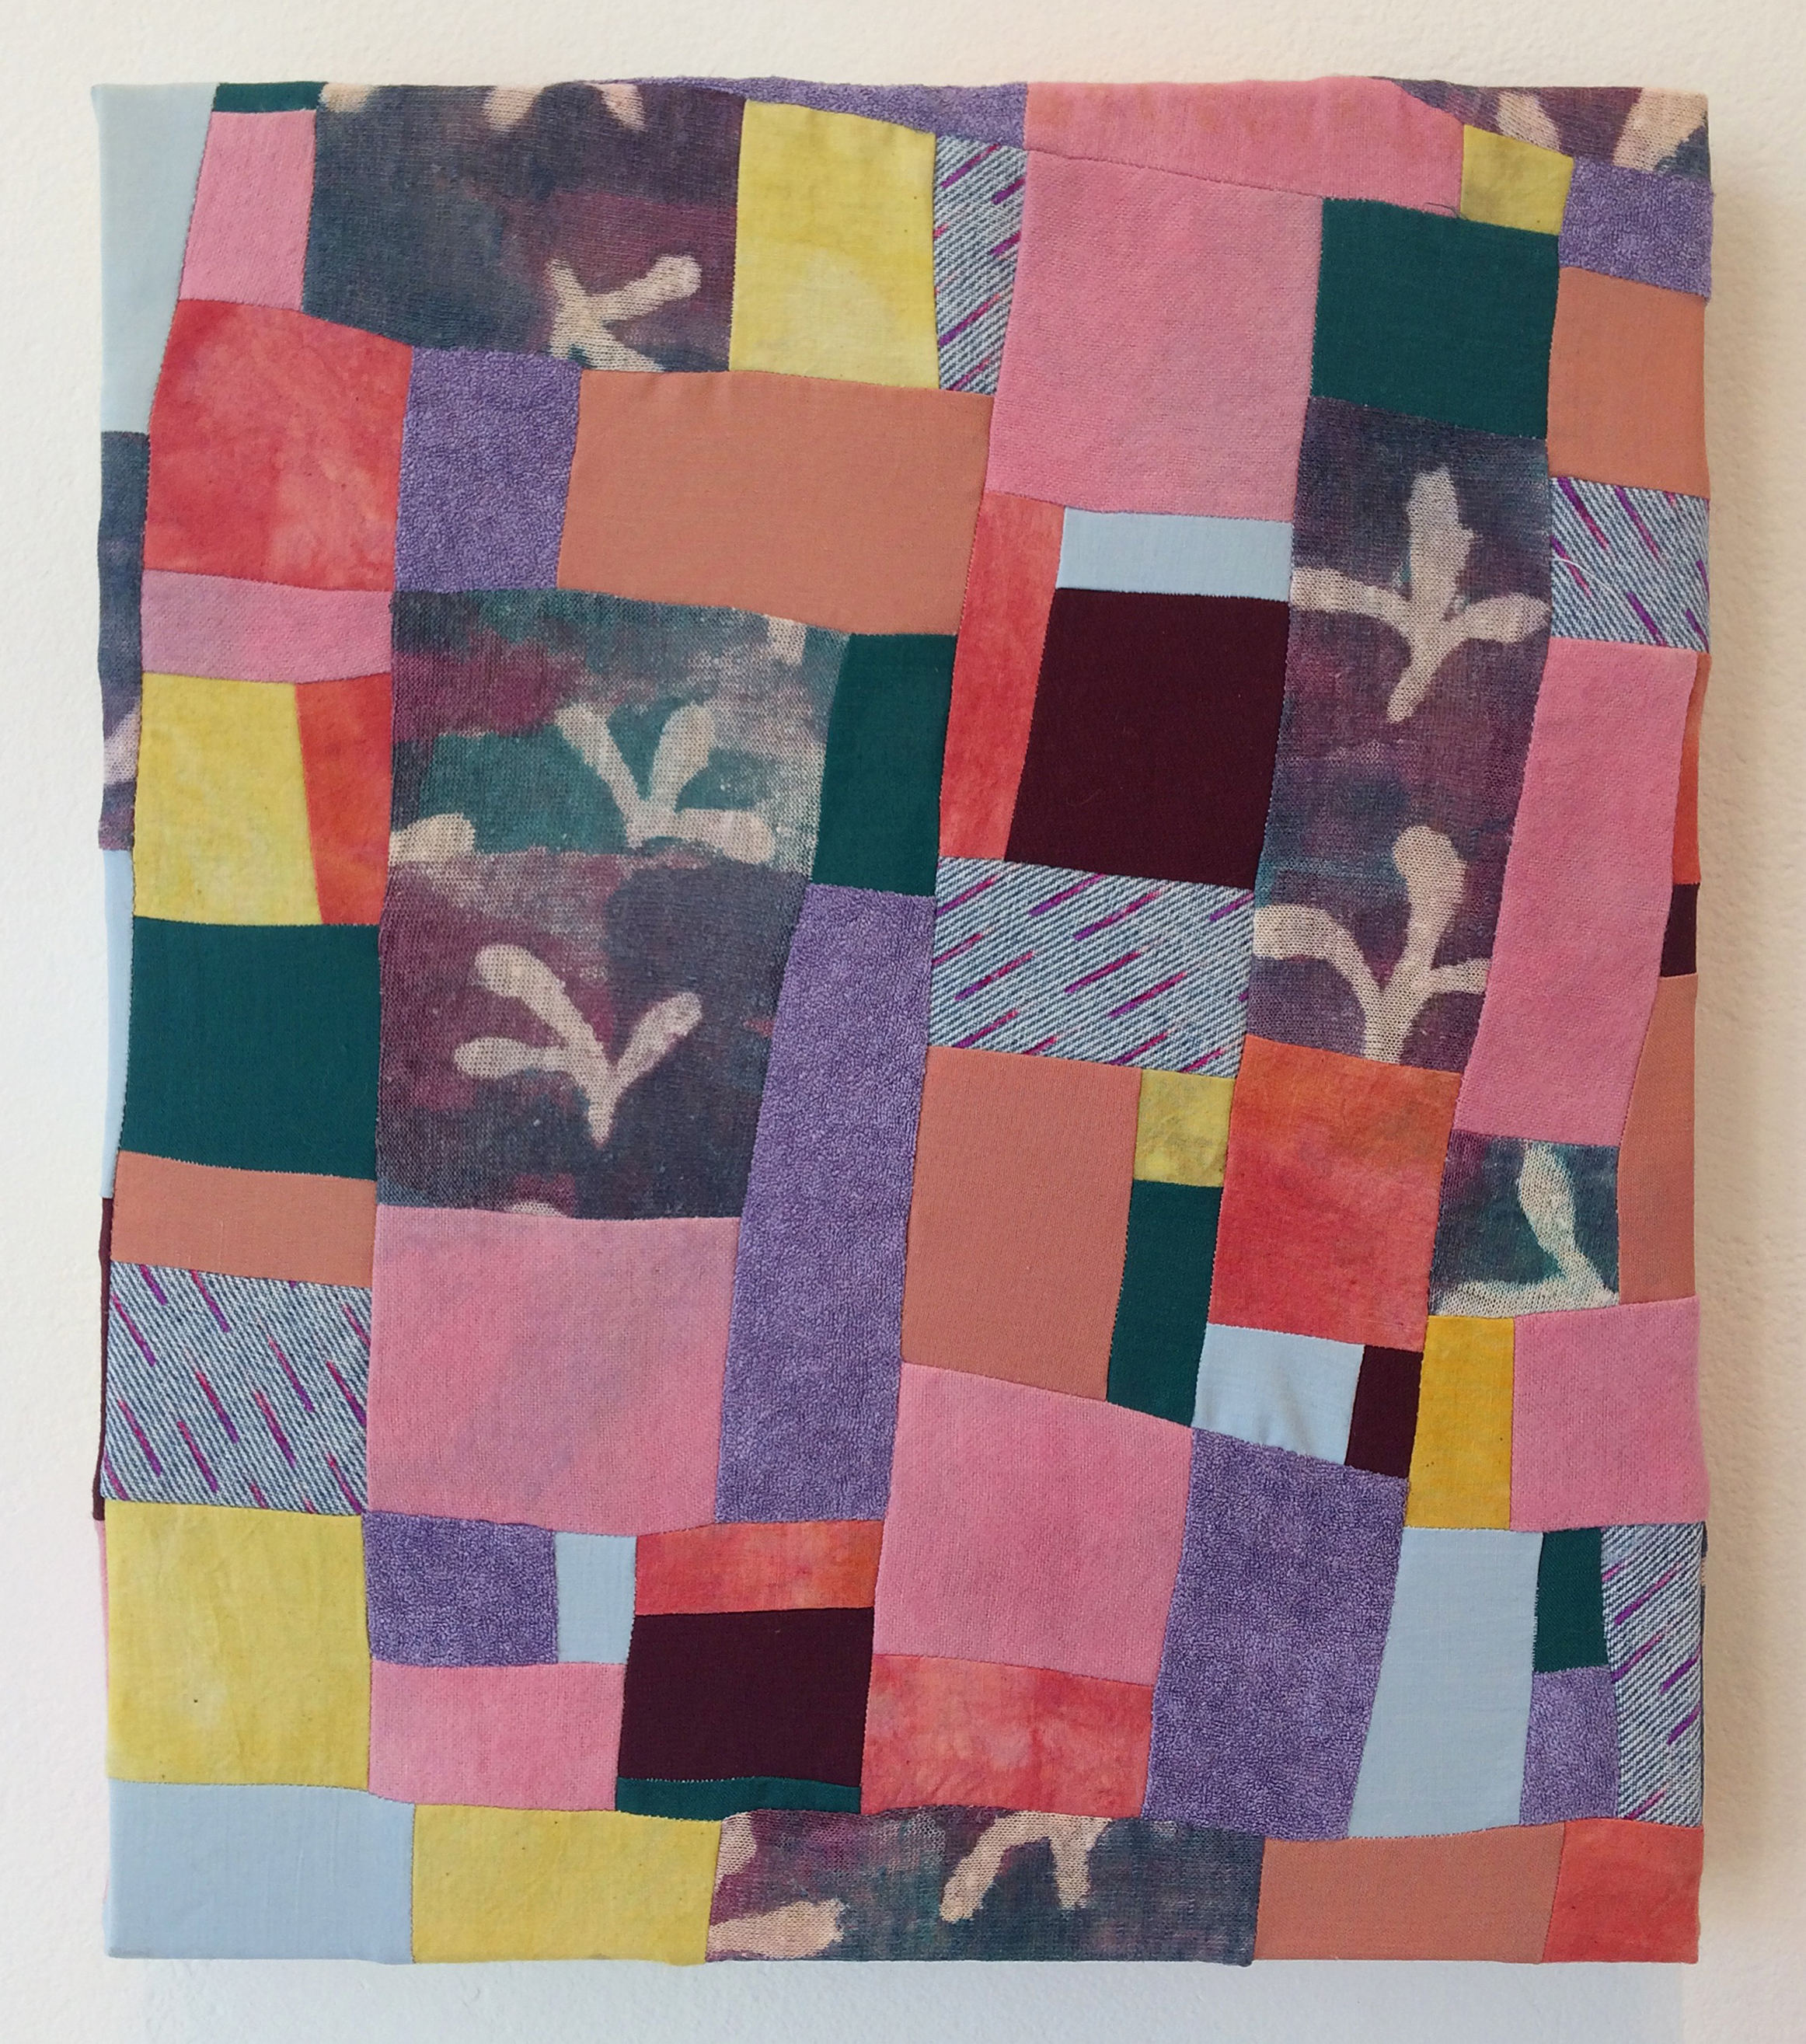 """2017, Winter Pruning, Cotton fabric, turmeric, cochineal, madder, dye, acrylic paint, resist, synthetic fabric, 12"""" x 14"""""""